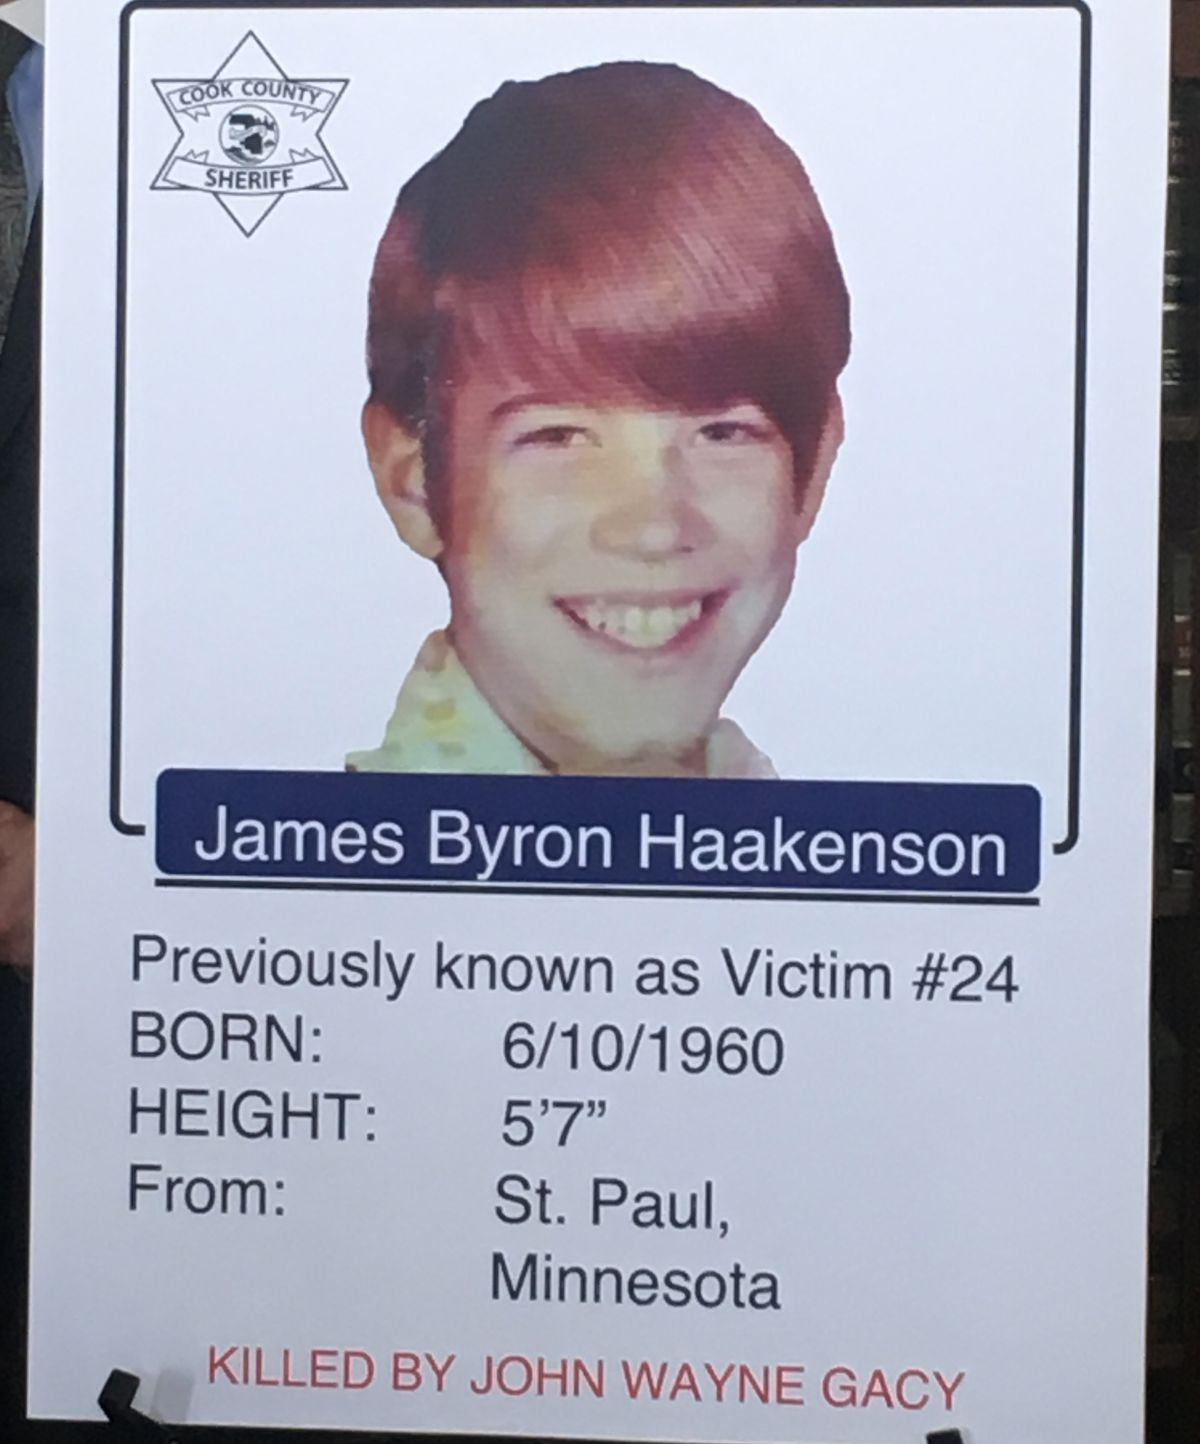 Cook County Sheriff Tom Dart on Wednesday announced that another victim of serial killer John Wayne Gacy has been identified. This victim was a 16-year-old runaway from Minnesota, James Byron Haakenson.   Mitch Dudek/Sun-Times